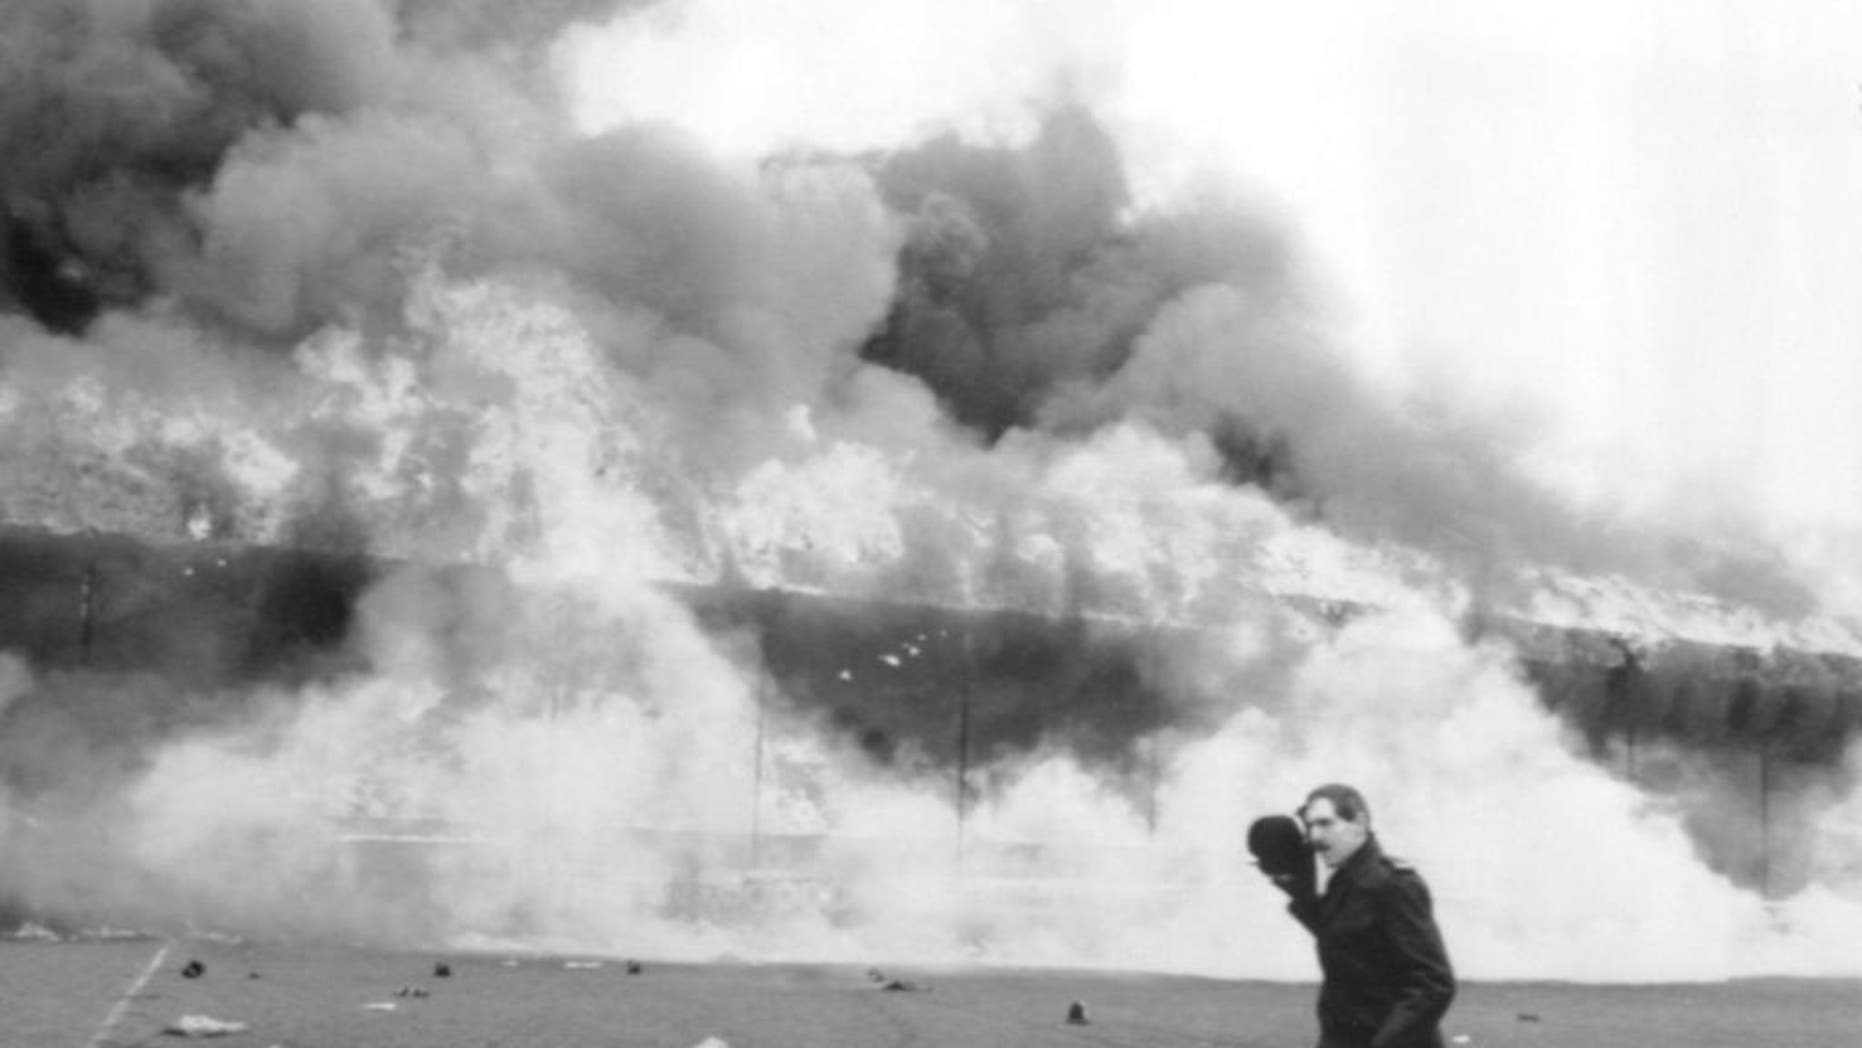 FILE - In this May 11, 1985 file photo, a police officer runs past the blazing main stand at Bradford City's Valley Parade football ground in Bradford, England. It's approaching 30 years since Valley Parade, Bradford's home ground, became an inferno. Fifty-six spectators died and 265 were injured when a fire broke out and engulfed a wooden main stand holding about 3,500 fans during the team's final match of the season against Lincoln. (PA via AP, File) UNITED KINGDOM OUT, NO SALES, NO ARCHIVE